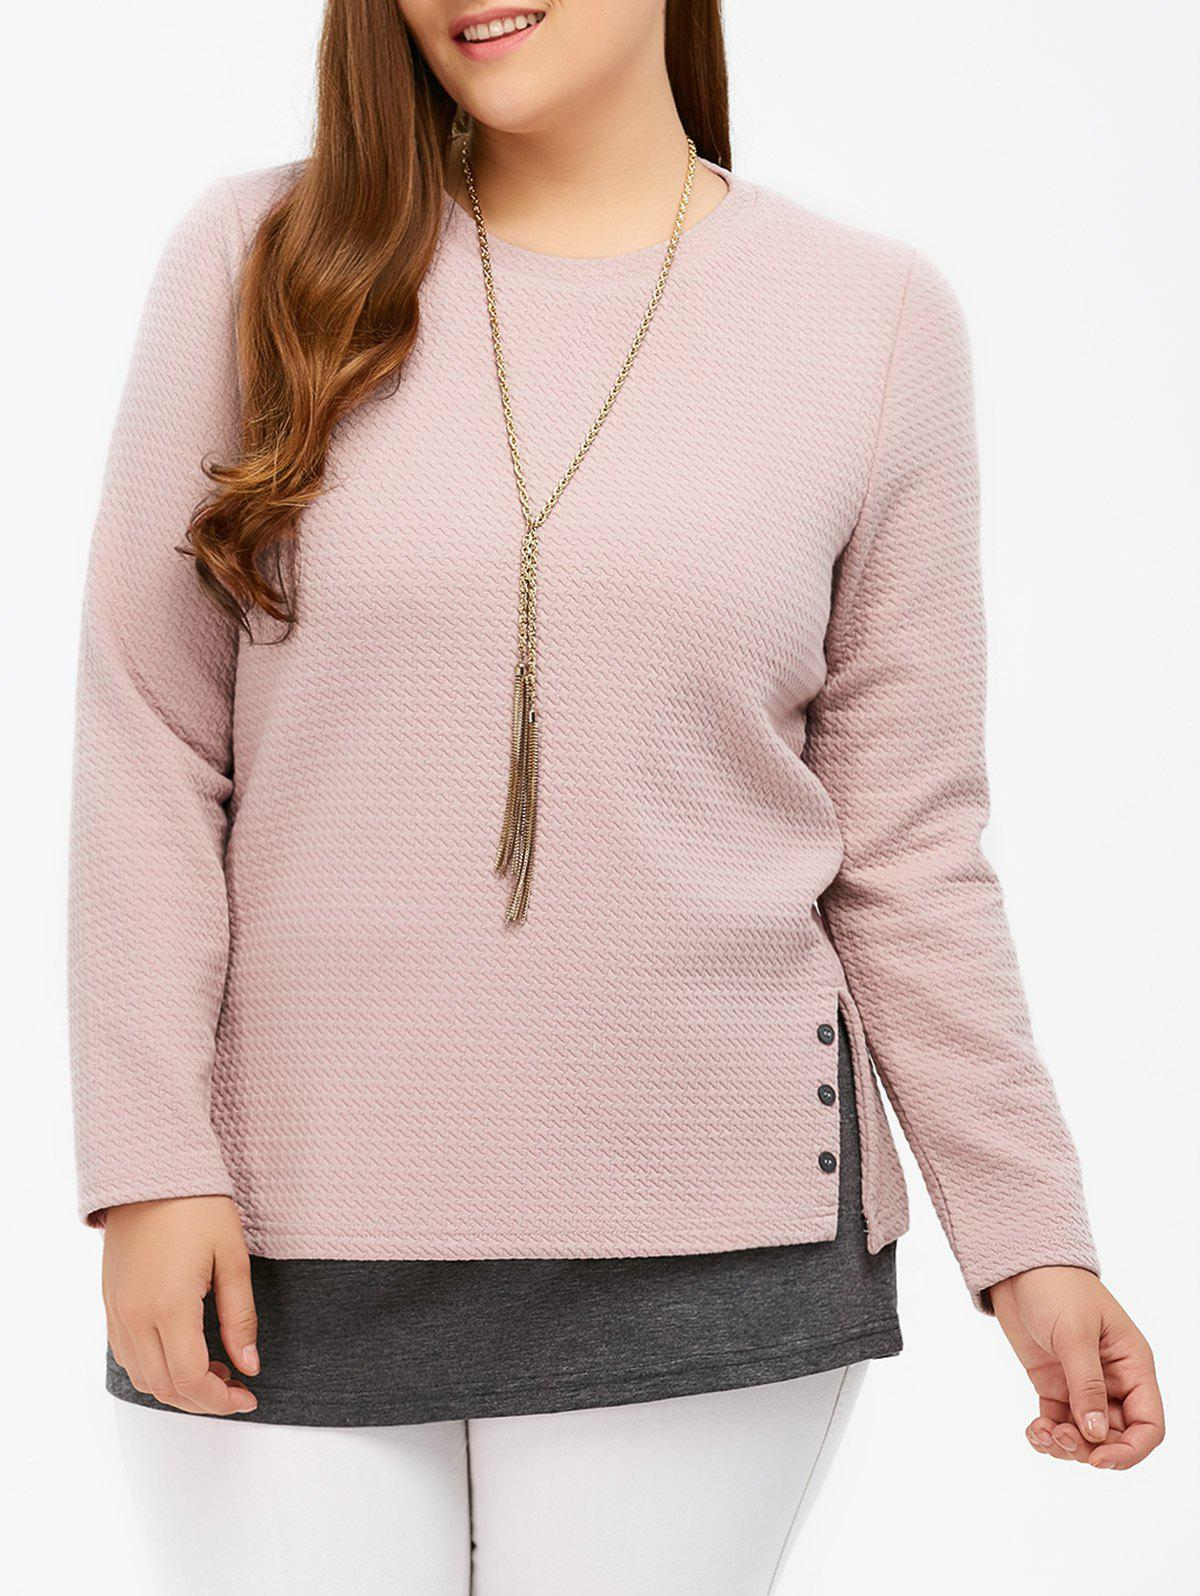 Side Slit Insert Knitwear - PINK/GREY 4XL